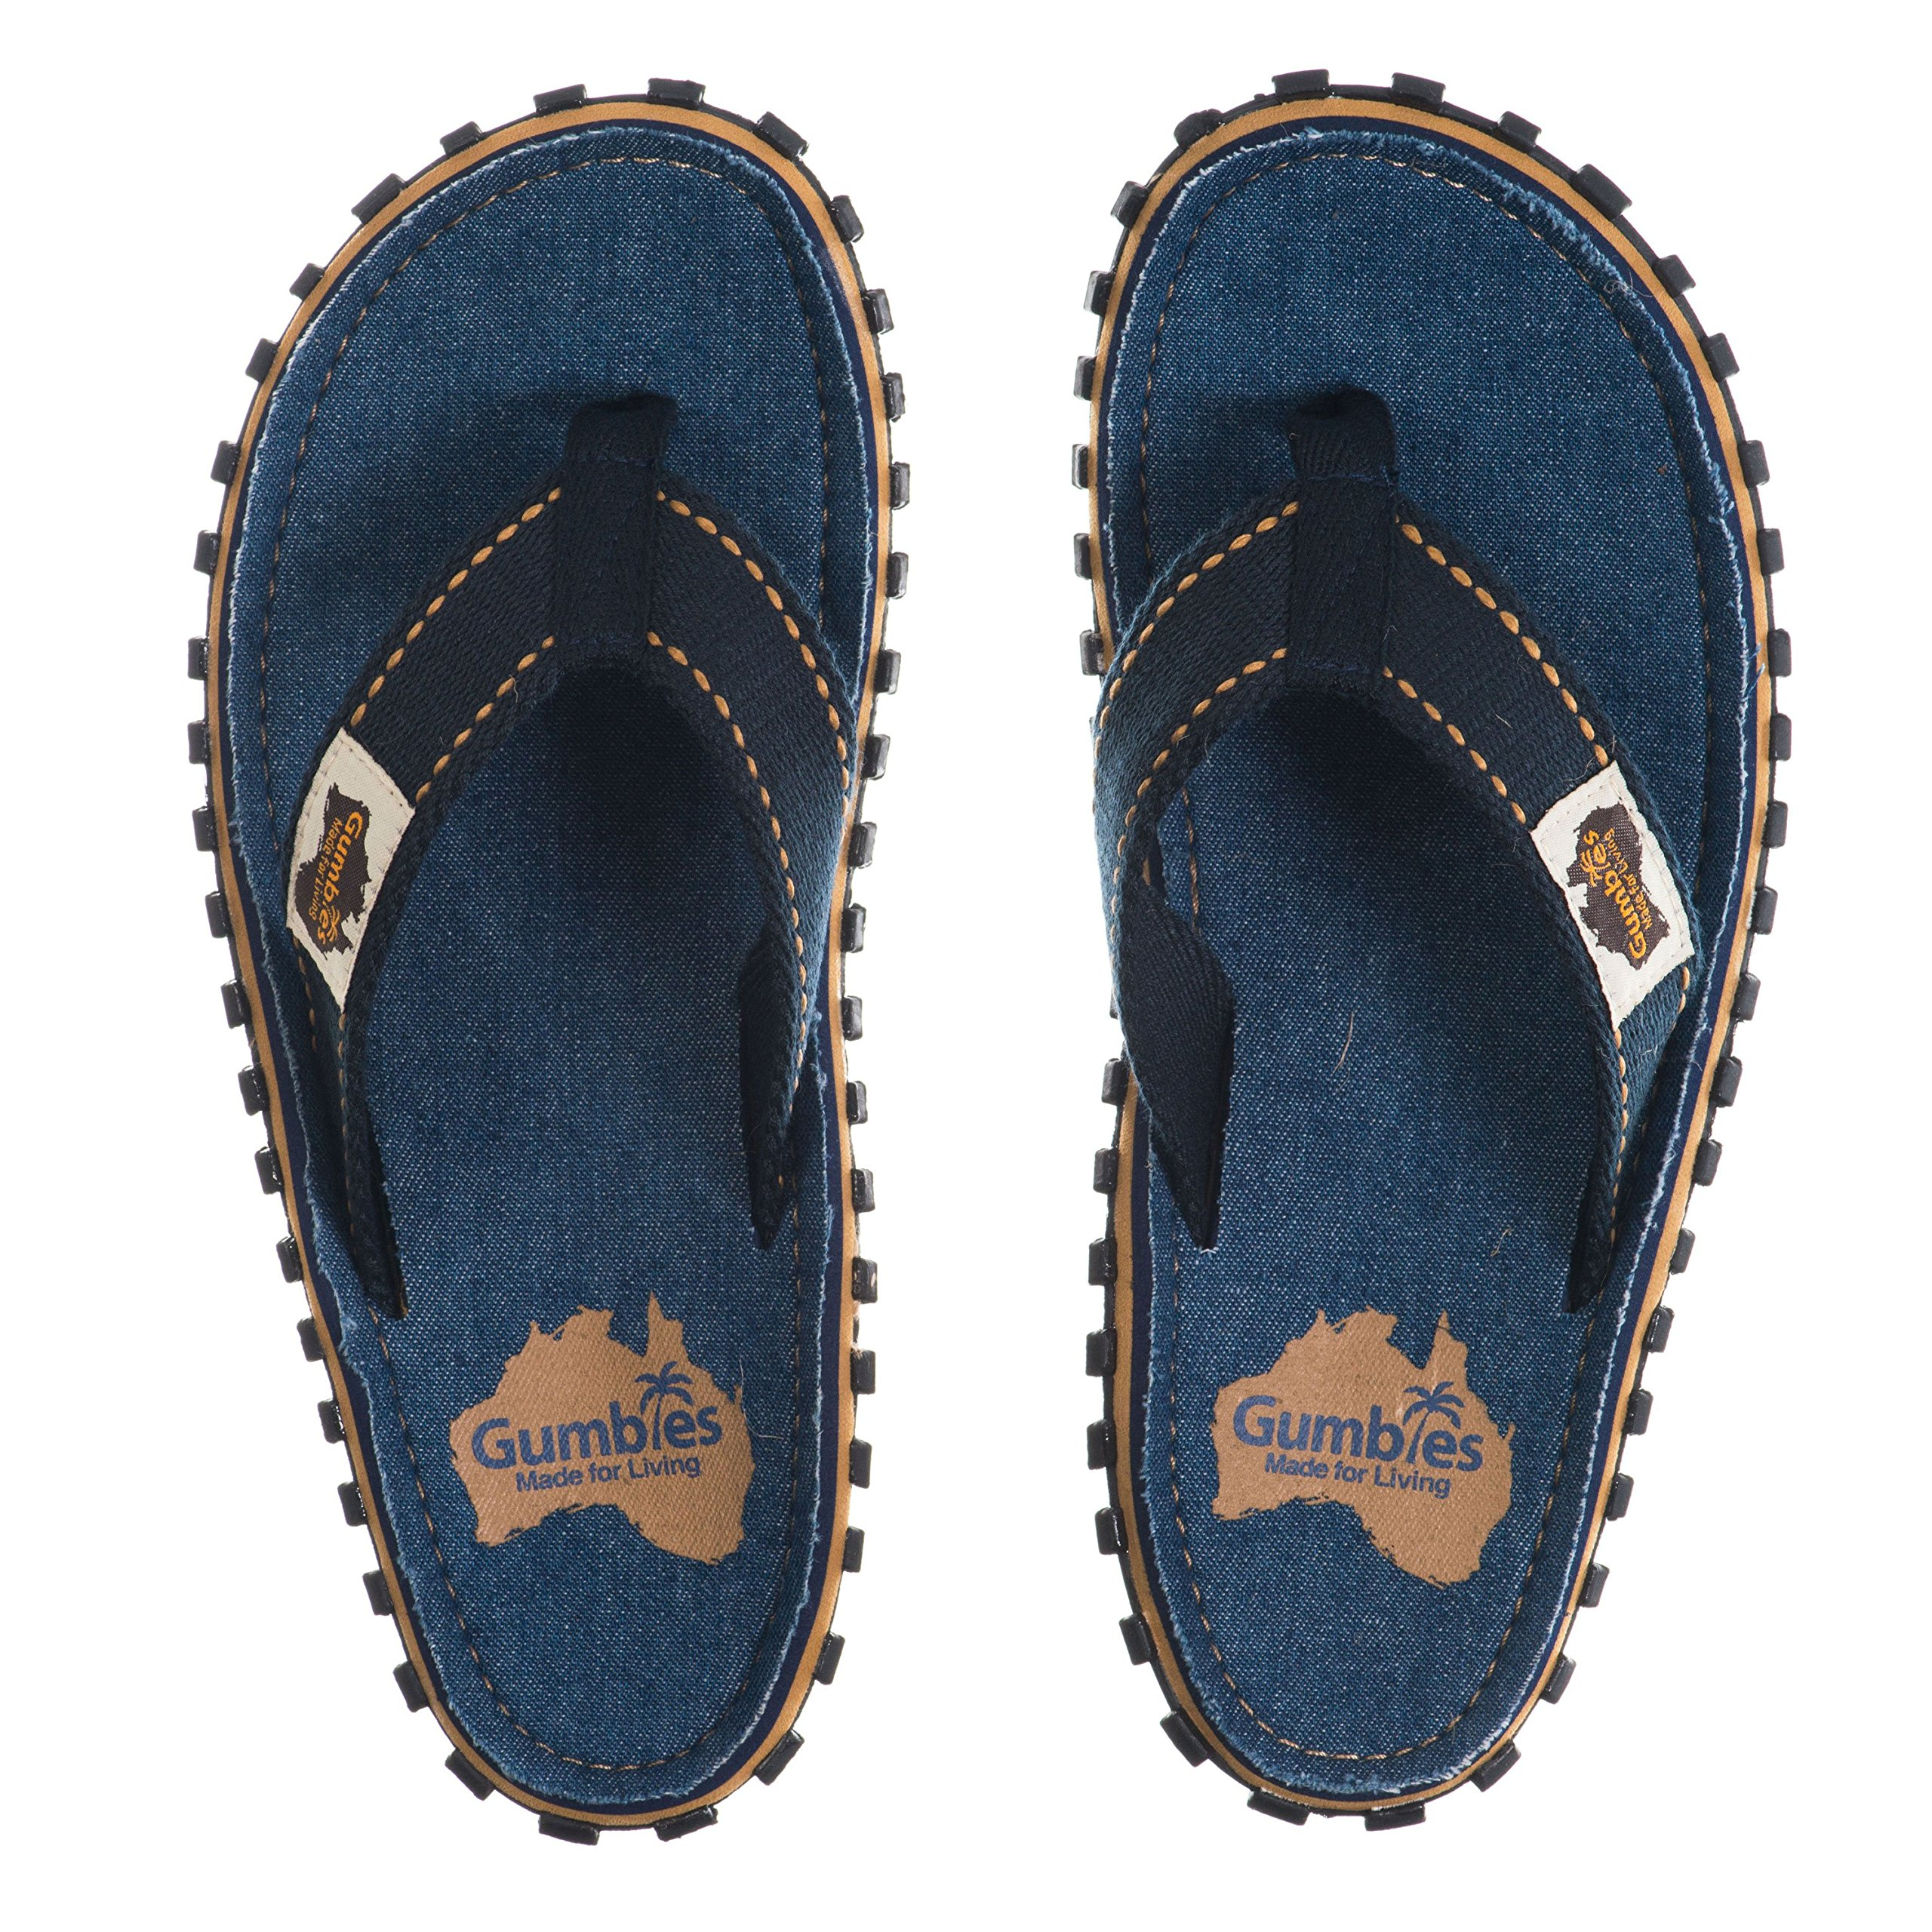 Gumbies Islander Canvas Flip-Flops - Unisex - Dark Denim